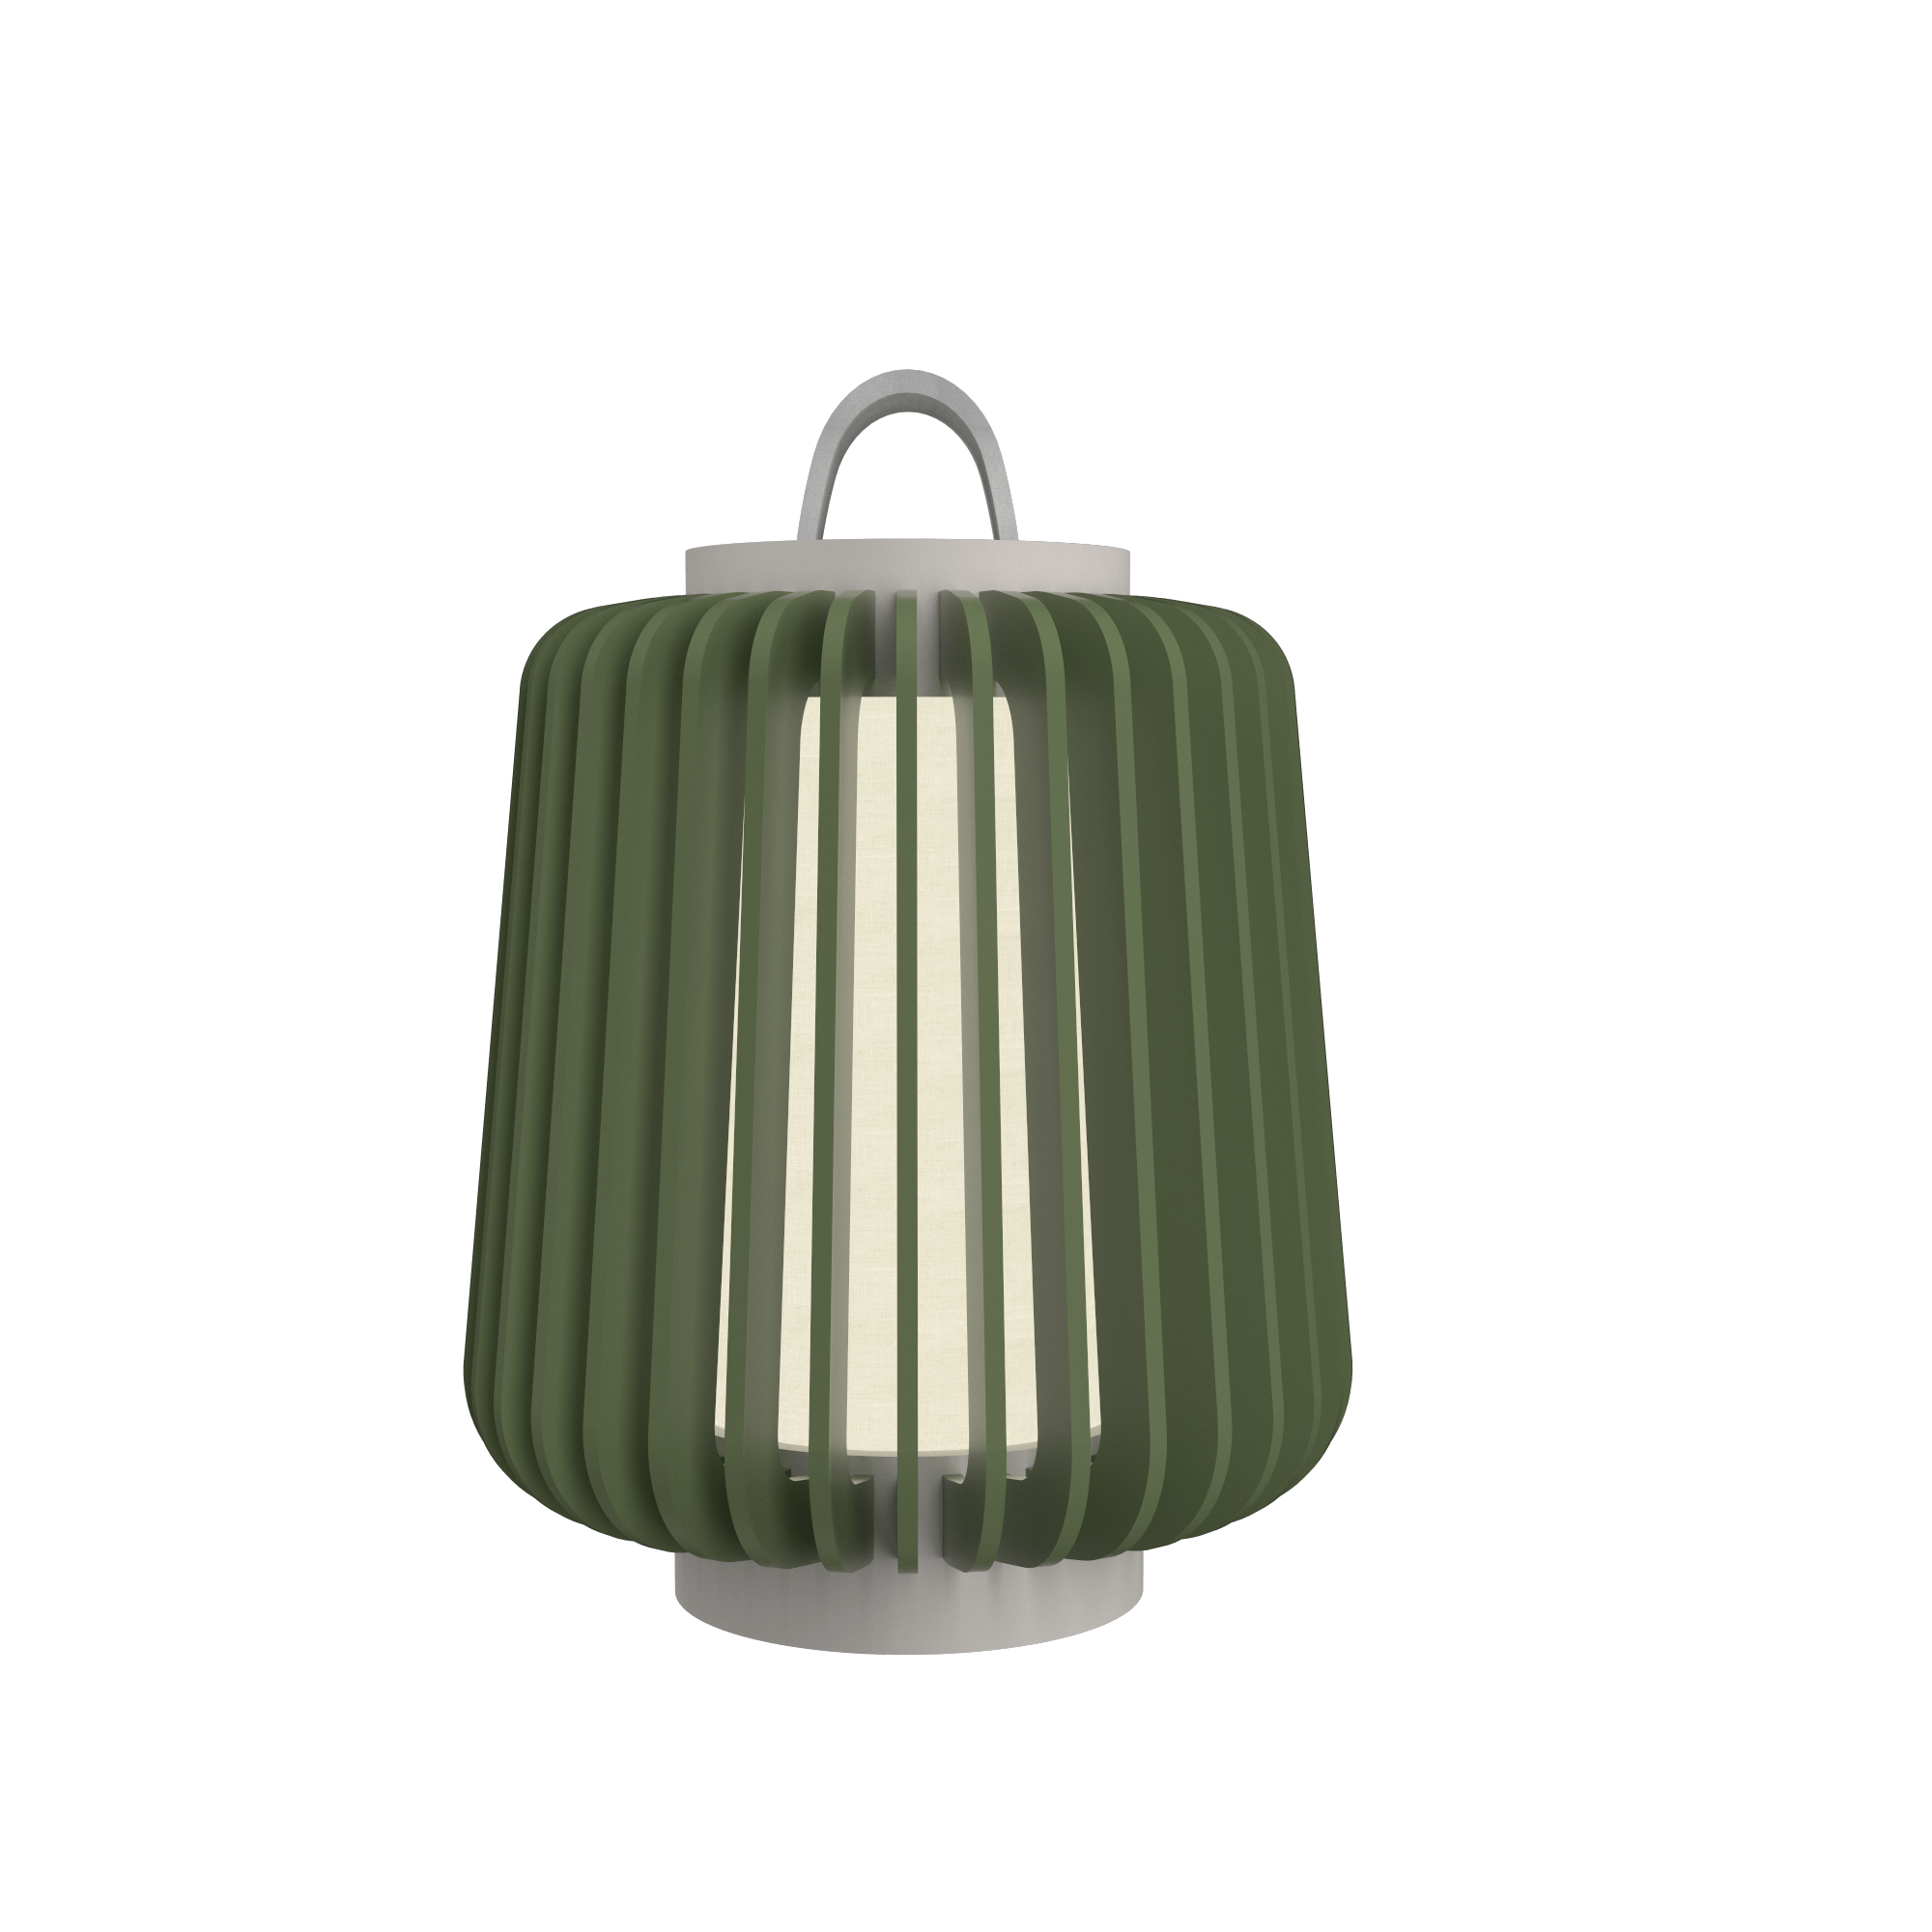 Table Lamp Accord Stecche Di Legno 7059 - Stecche Di Legno Line Accord Lighting | 30. Olive Green